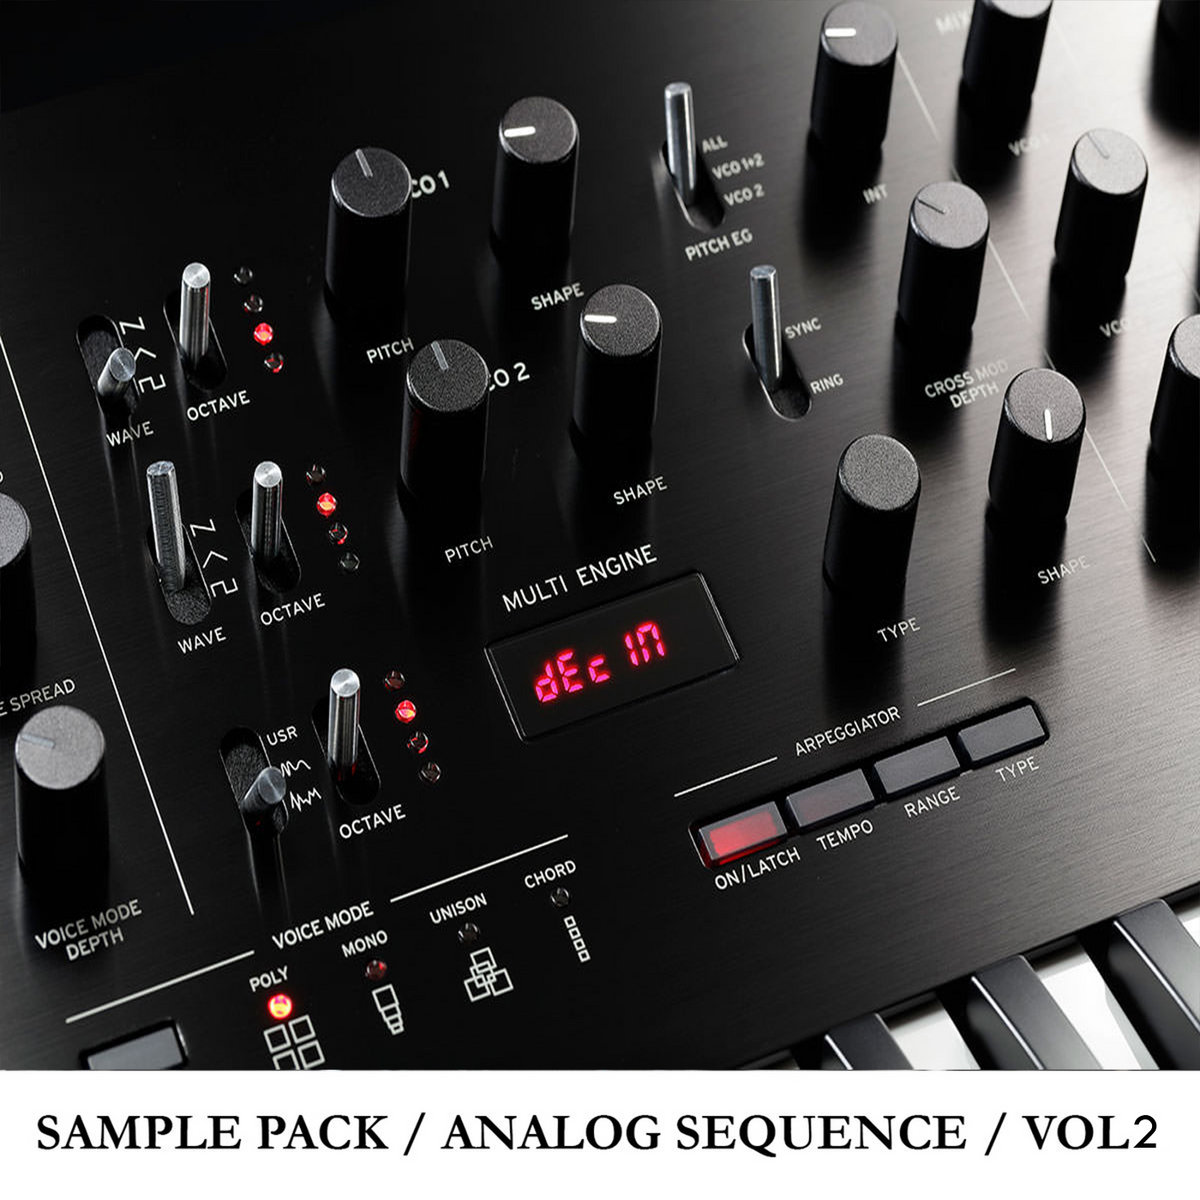 Sample Pack Analog Sequence Vol 02 - 06 SP 4-Audio 8-Audio